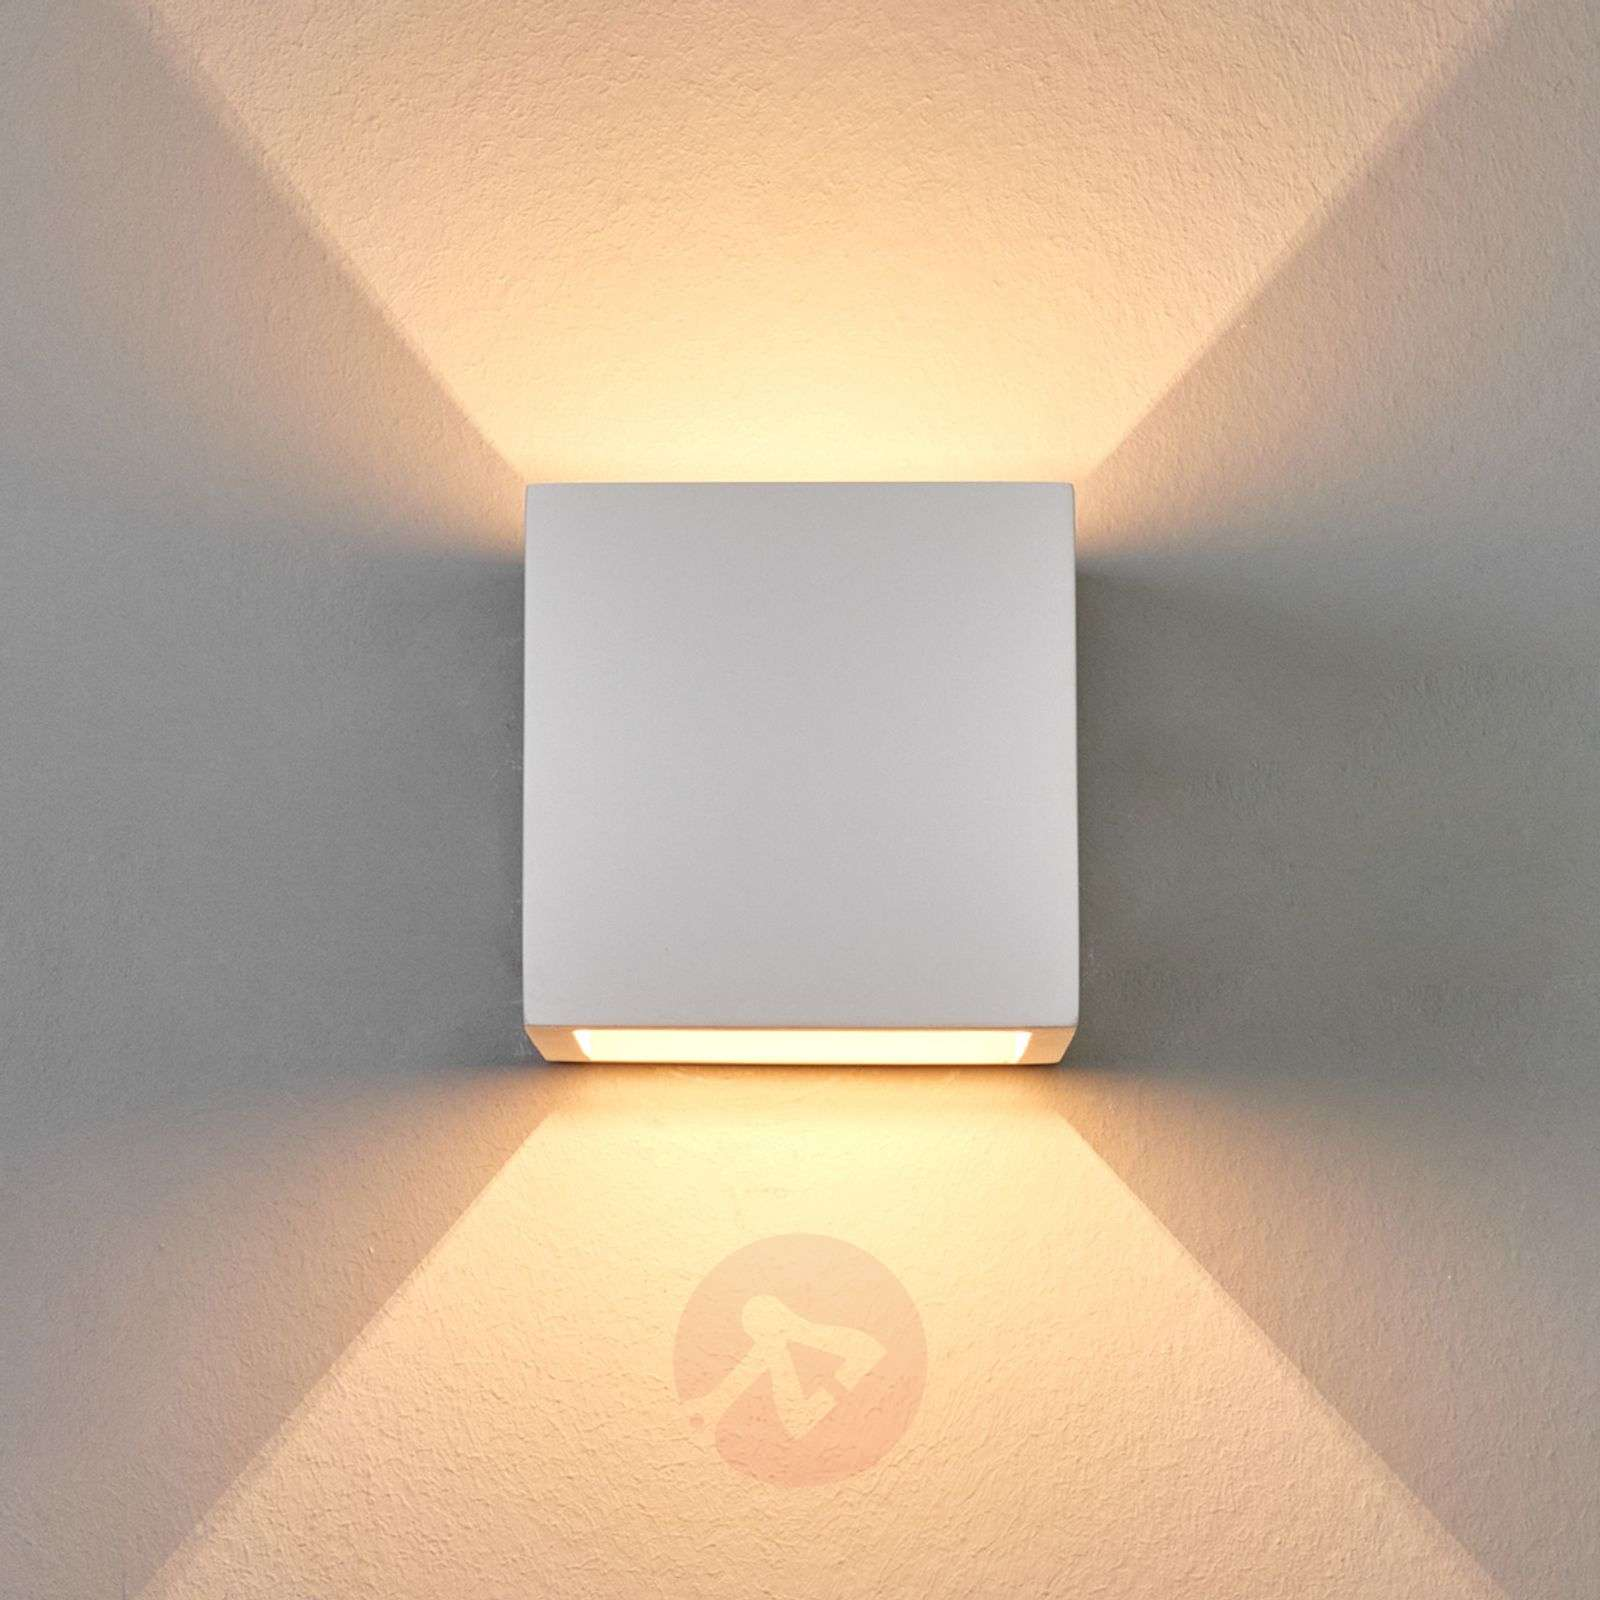 Freja Halogen Wall Light Discreet Plaster-9613001-01